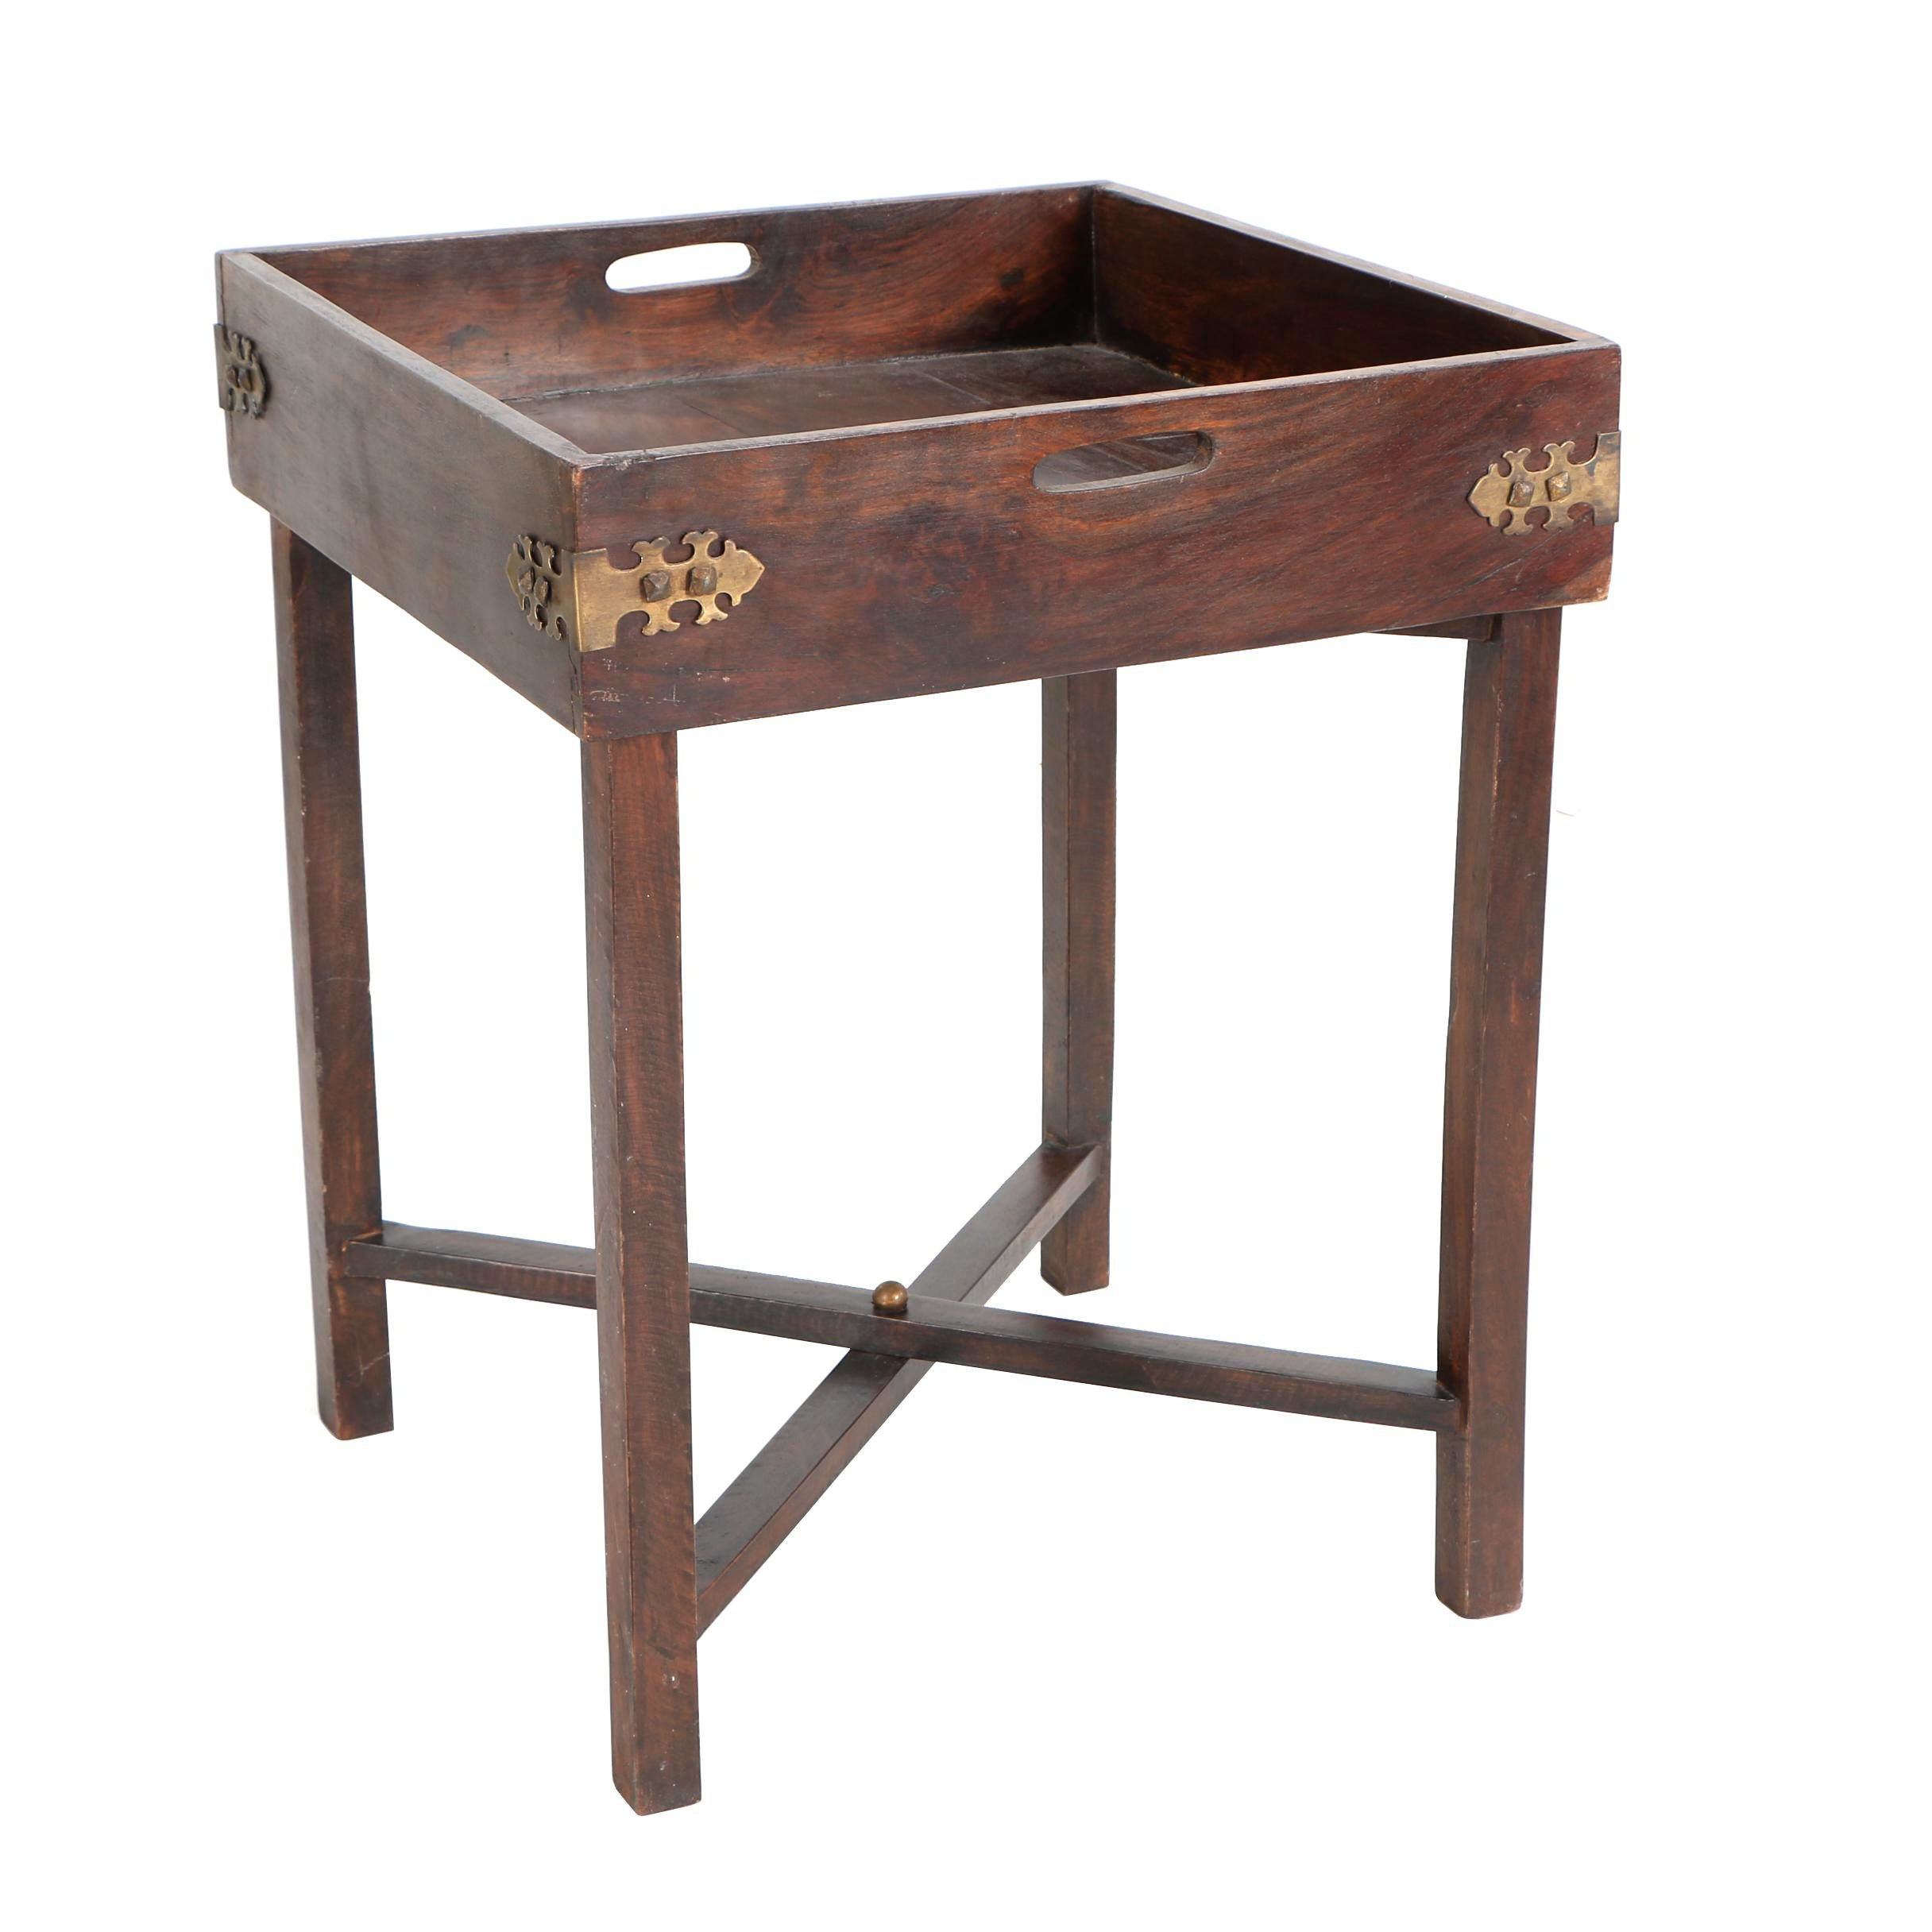 F.O. Merz & Co. Wood and Brass Butler's Table